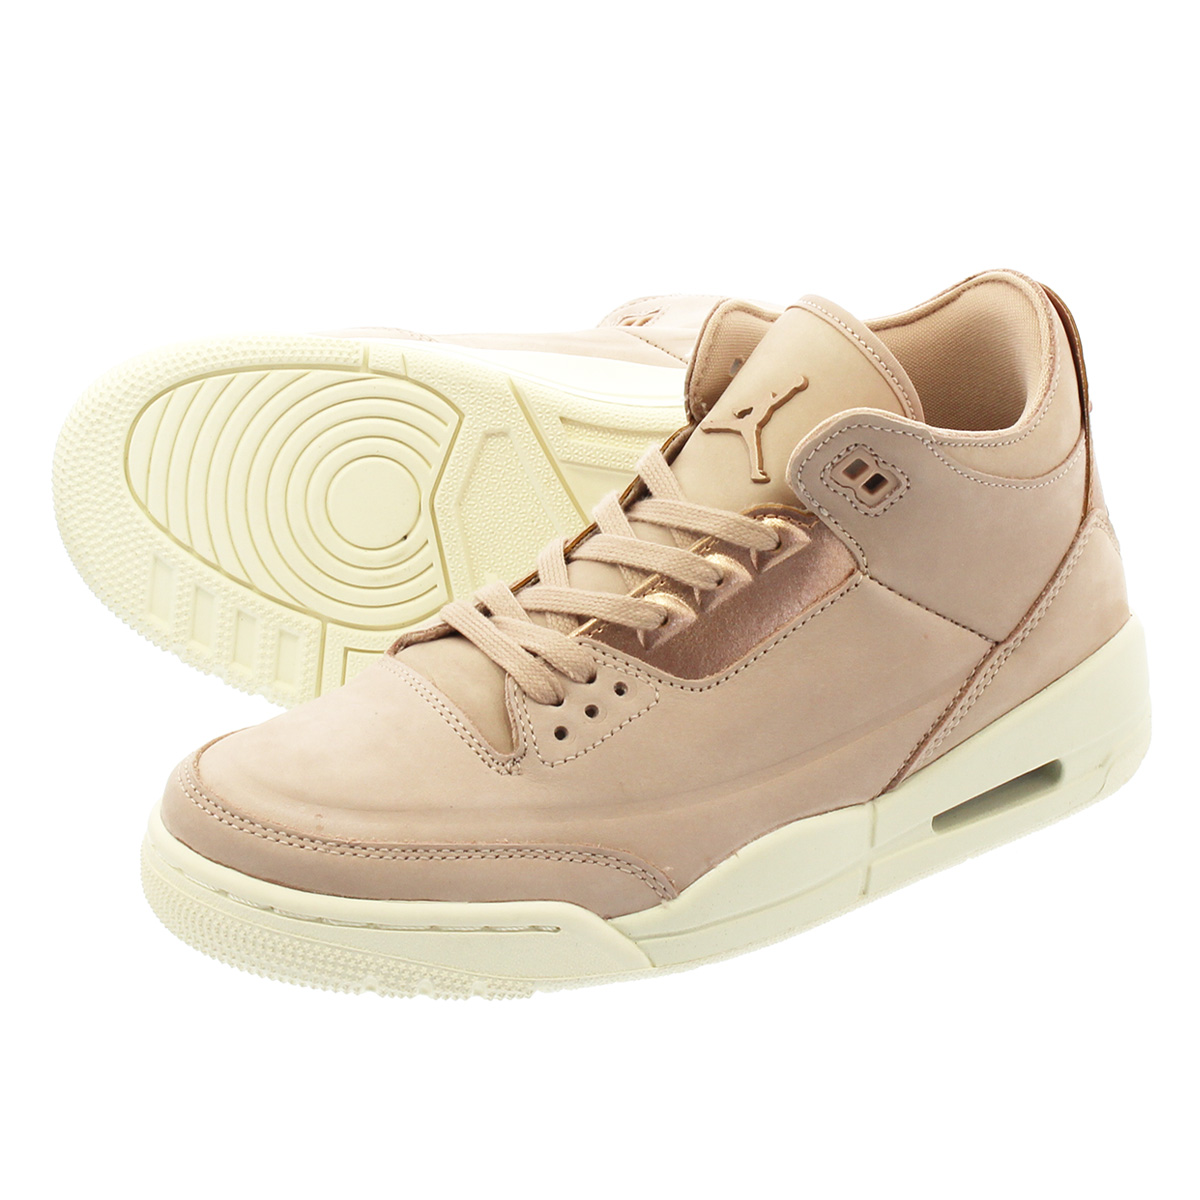 a88b7e6a552 LOWTEX PLUS: NIKE WMNS AIR JORDAN 3 RETRO SE Nike women Air Jordan 3  nostalgic PARTICLE BEIGE/METALLIC RED BRONZE/SAIL ah7859-205 | Rakuten  Global Market